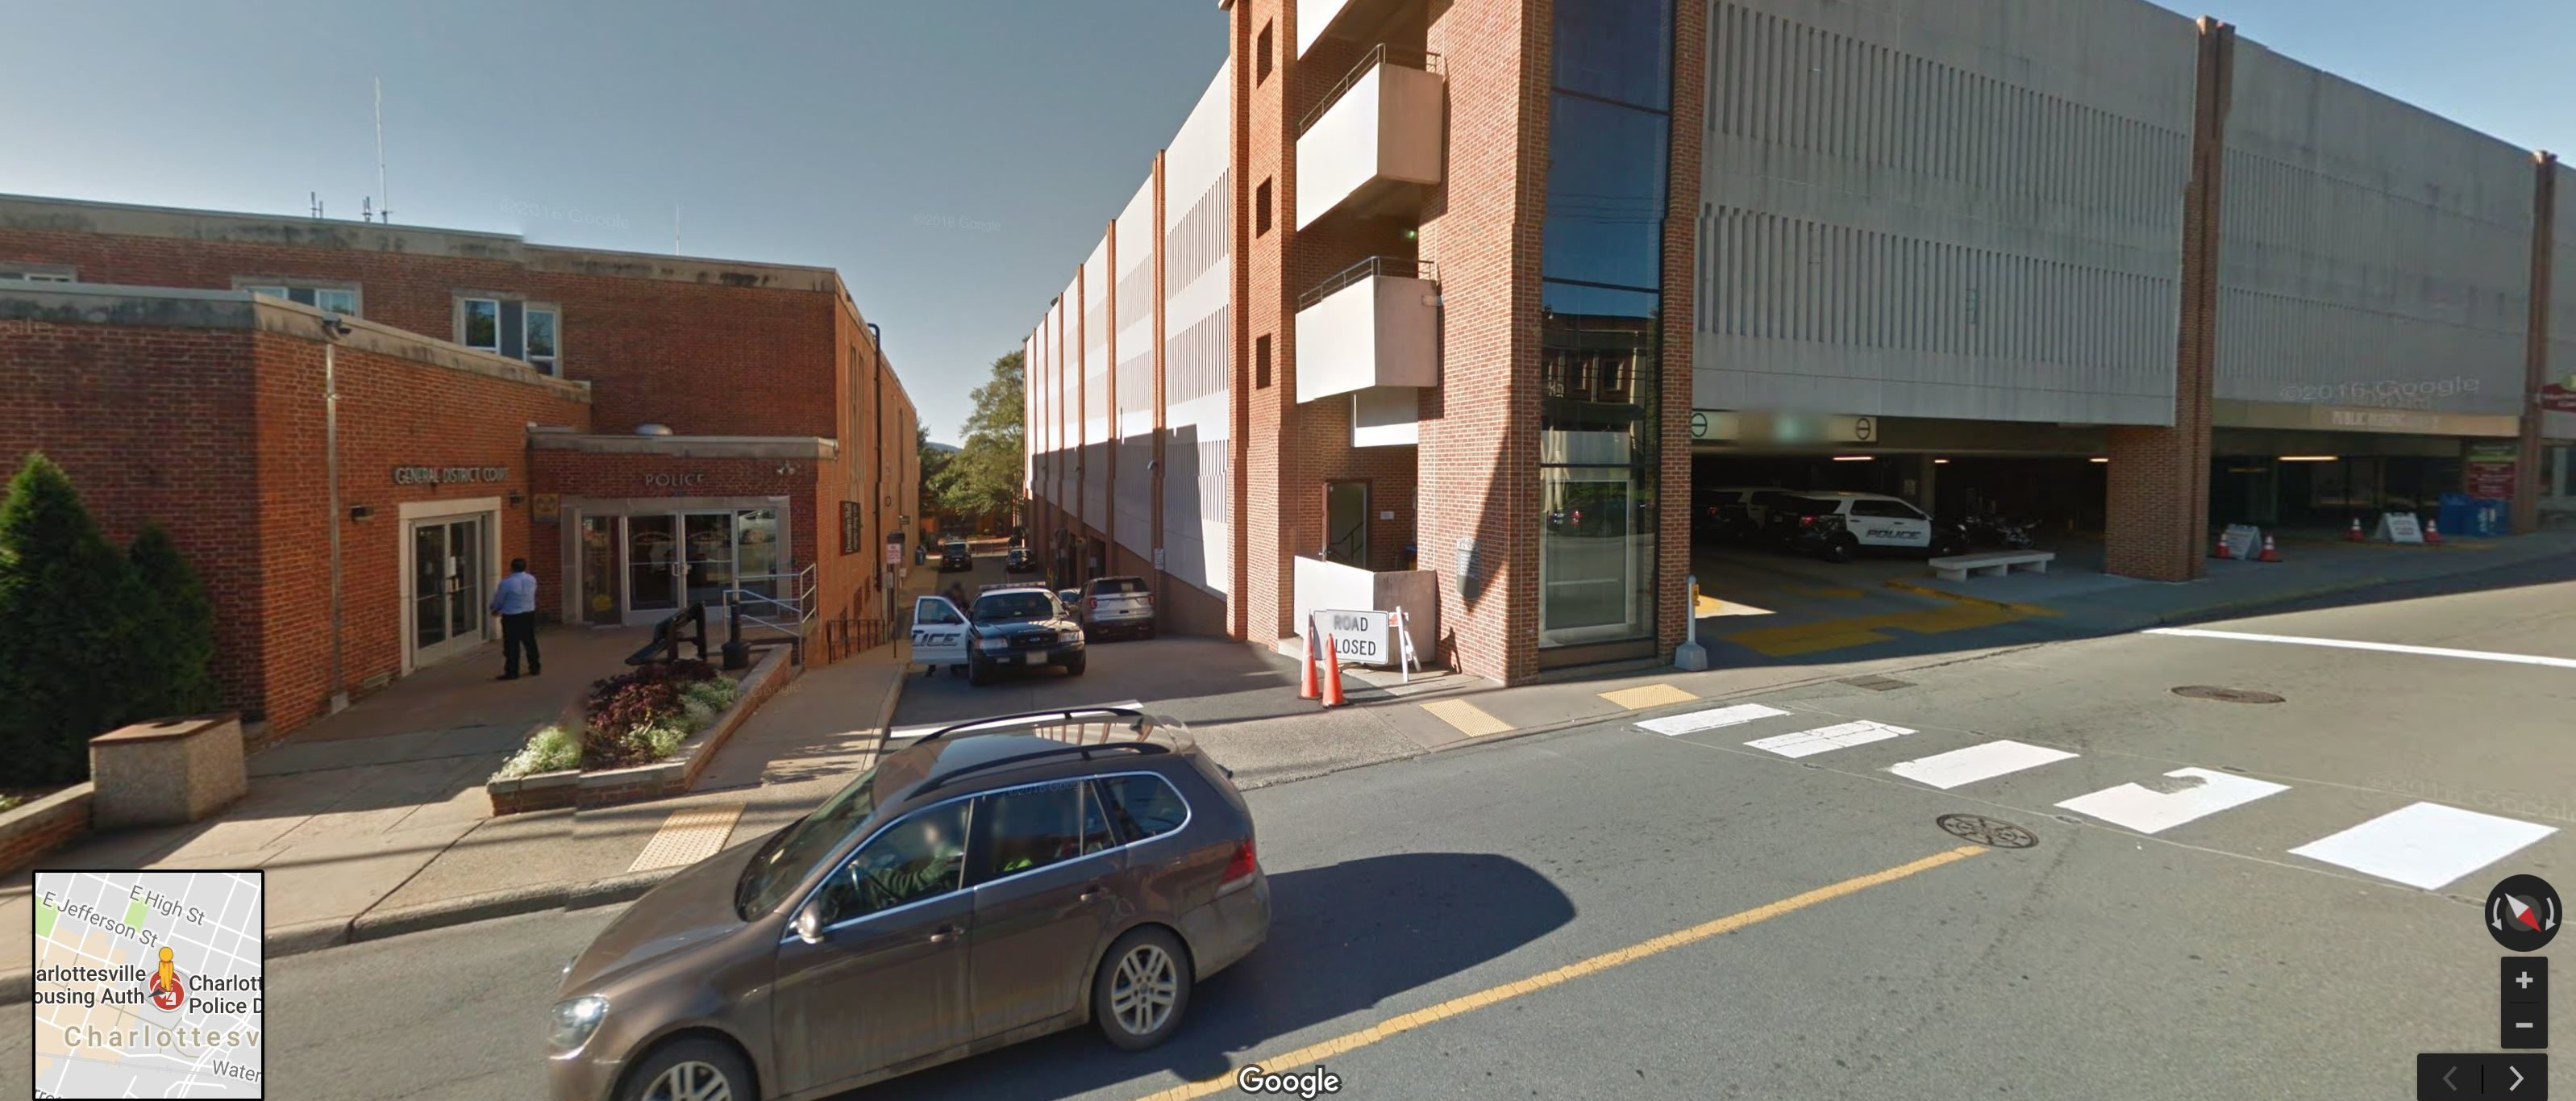 Photo from Google Maps shows the parking structure where the video was captured. The Charlottesville Police Dept. is next door. (Google Maps Screenshot)